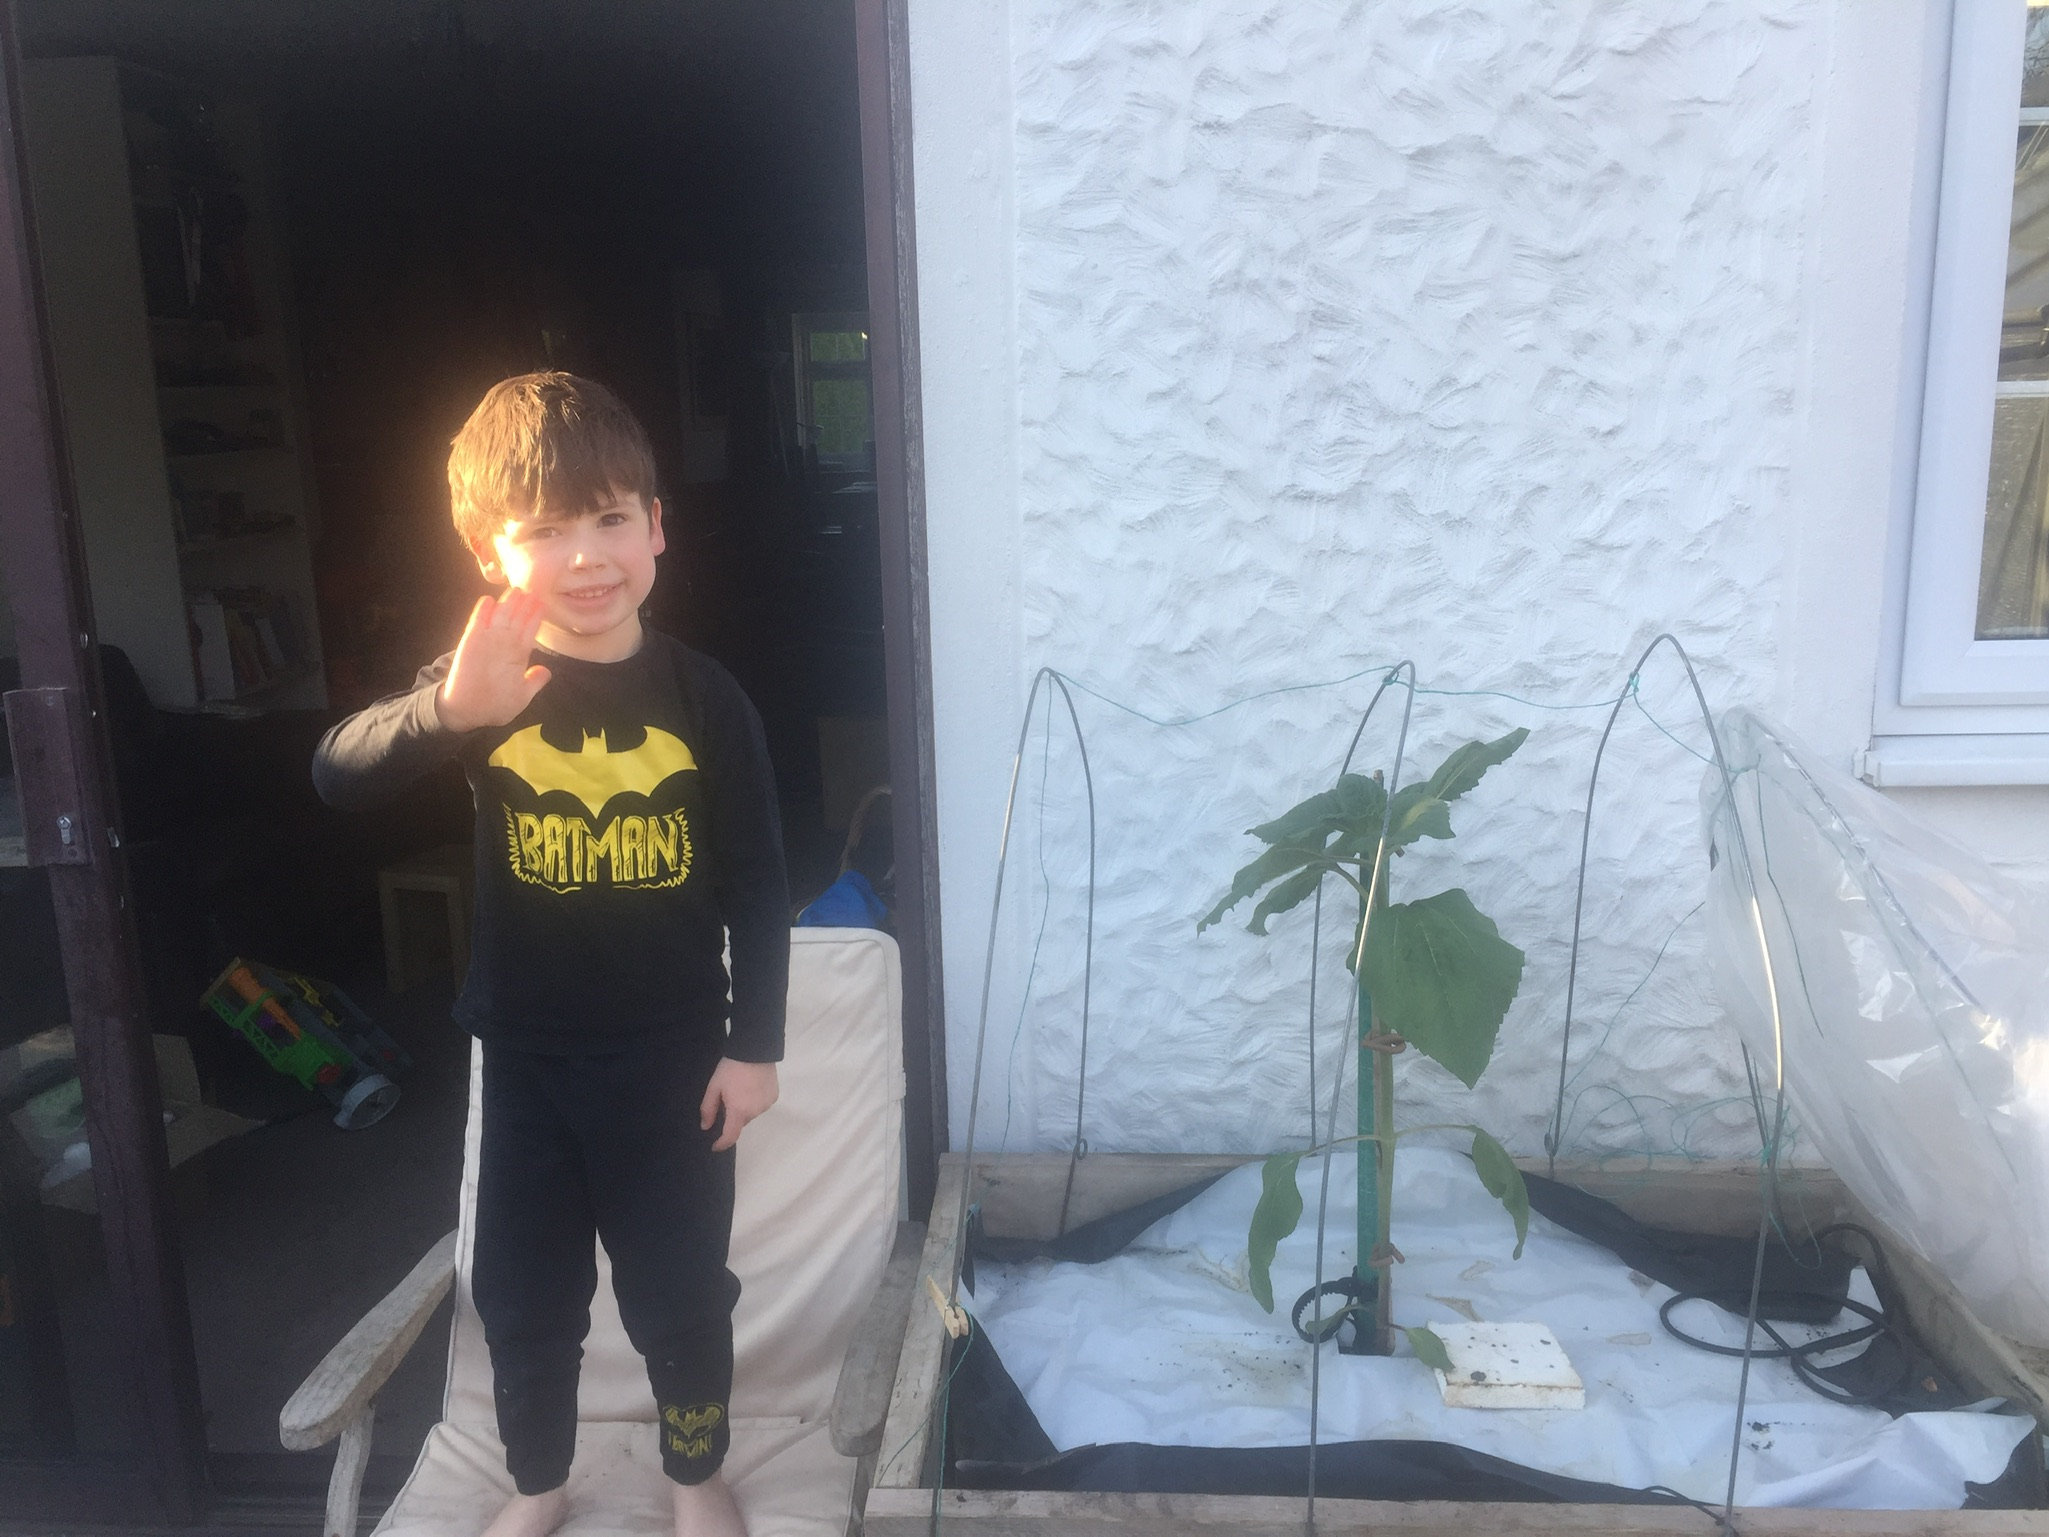 Four-year-old stood next to sunflower